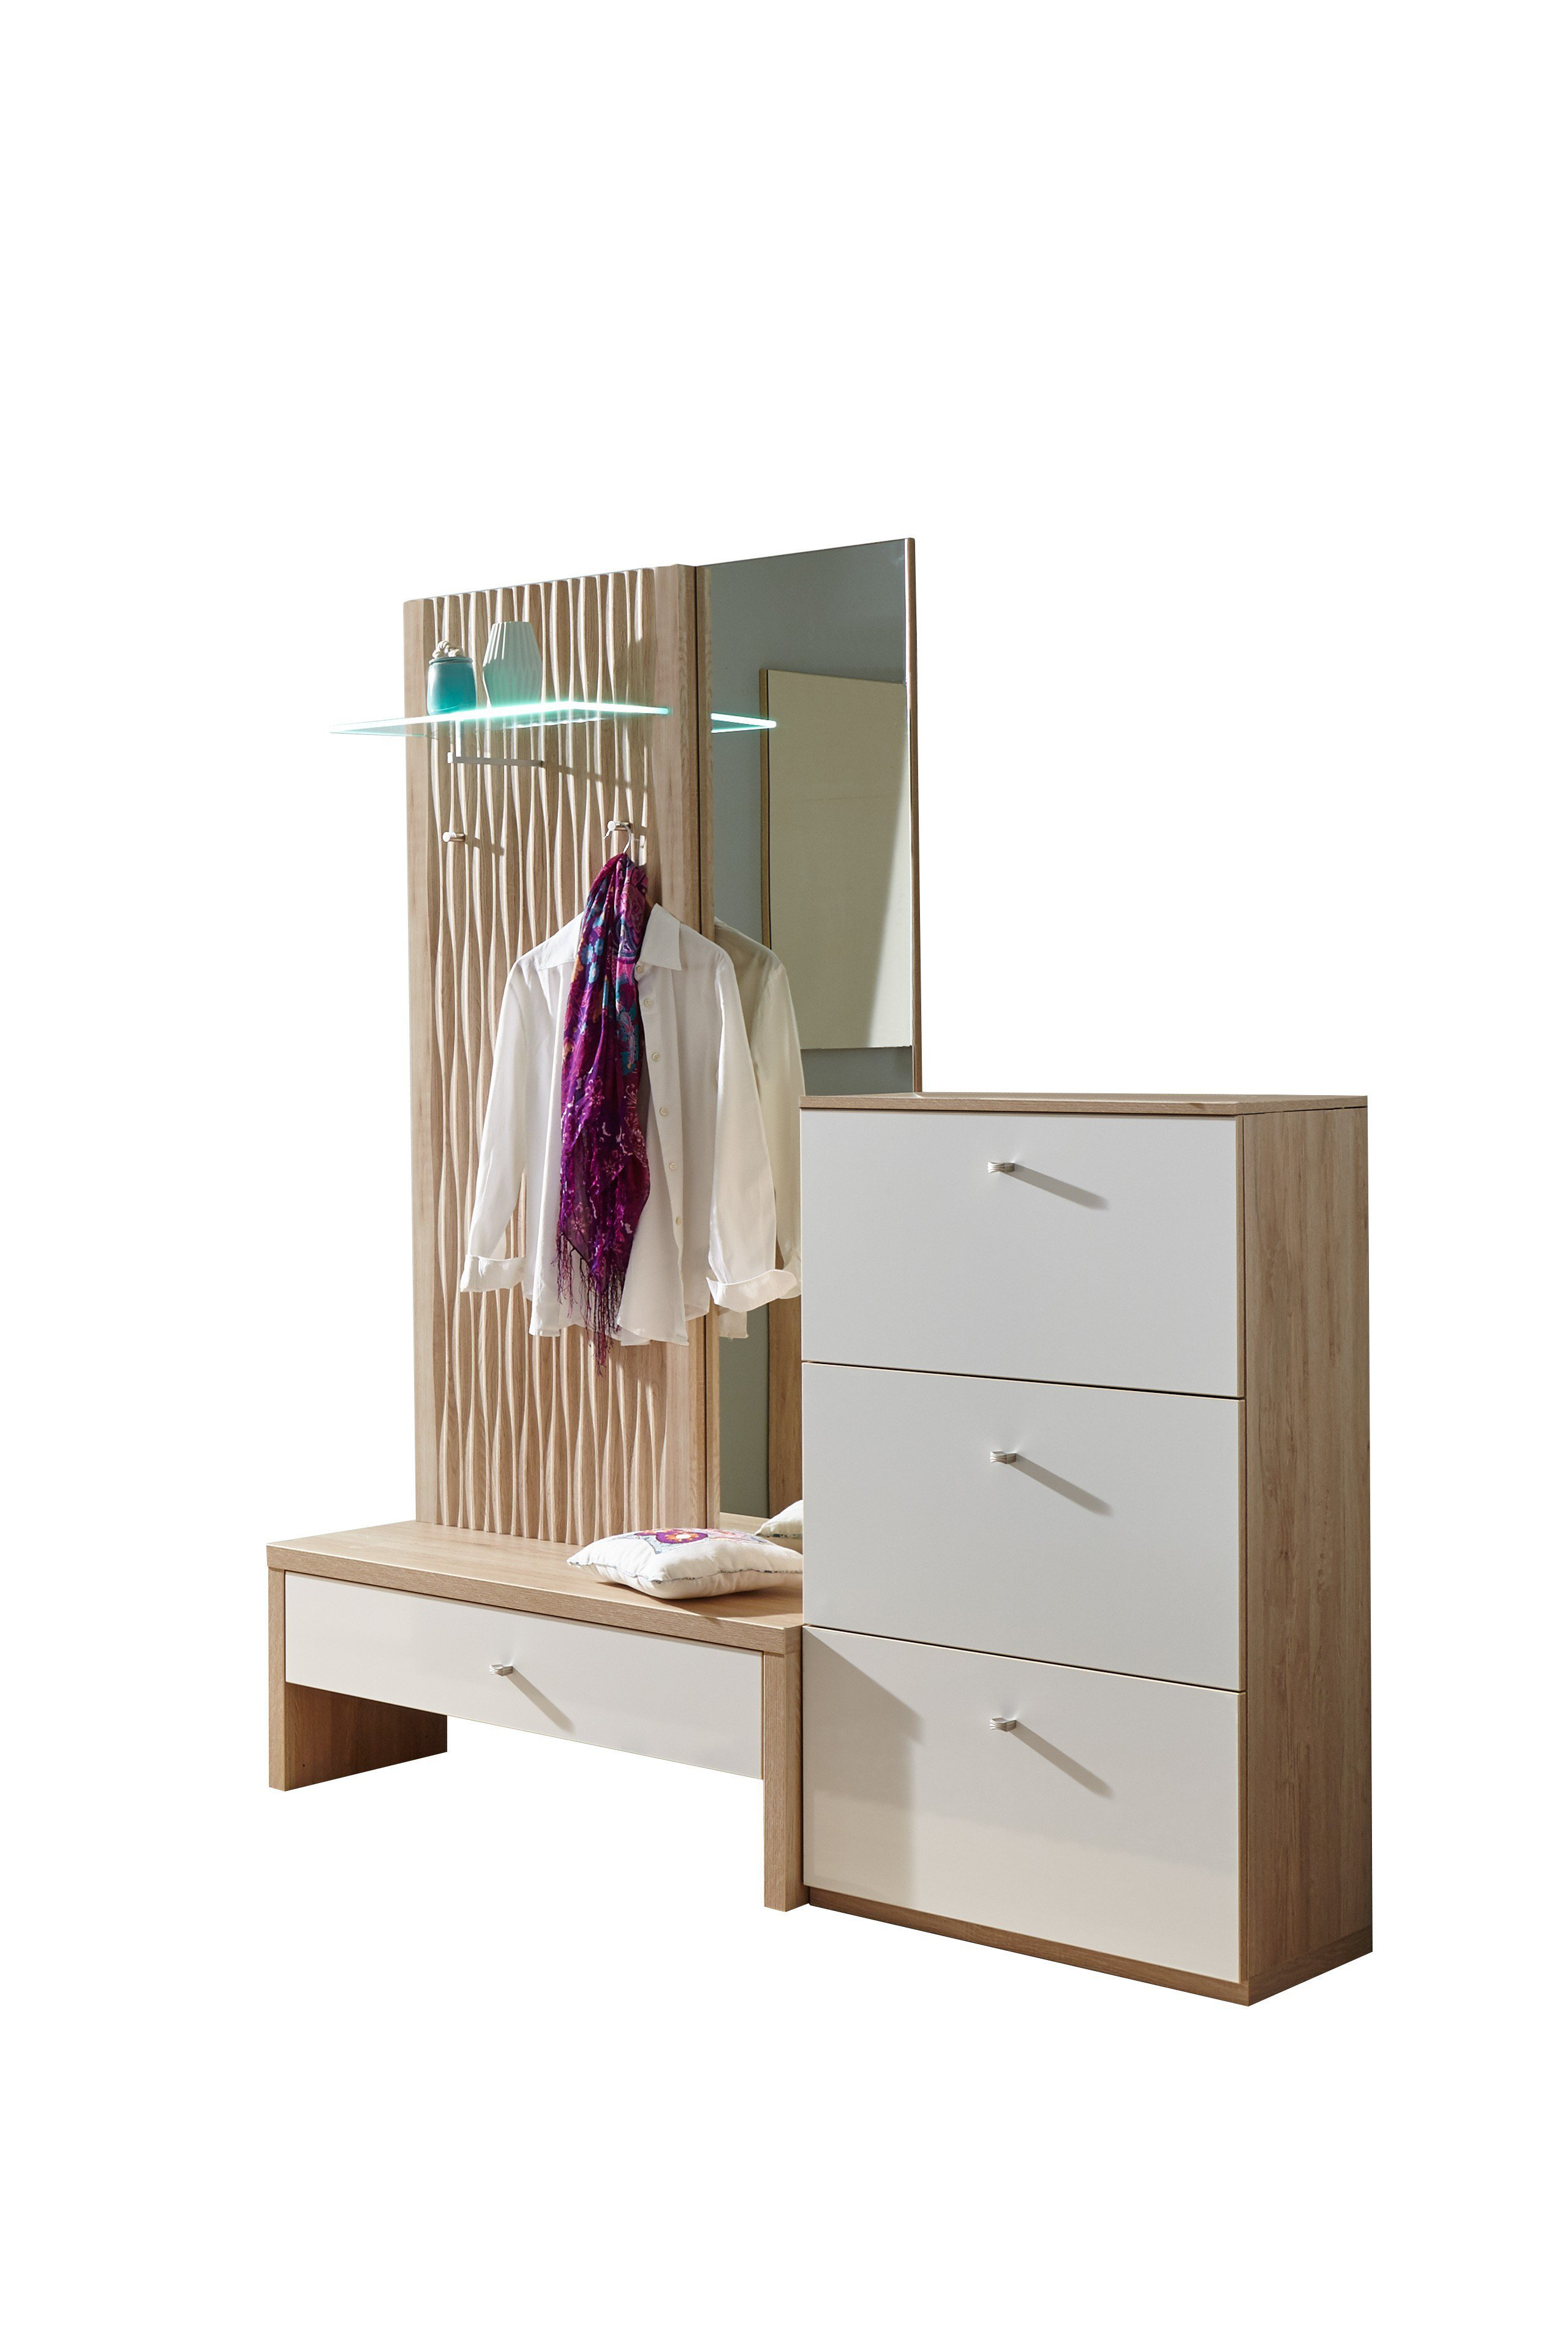 garderobe m nchen plus in sandeiche von prenneis m bel letz ihr online shop. Black Bedroom Furniture Sets. Home Design Ideas